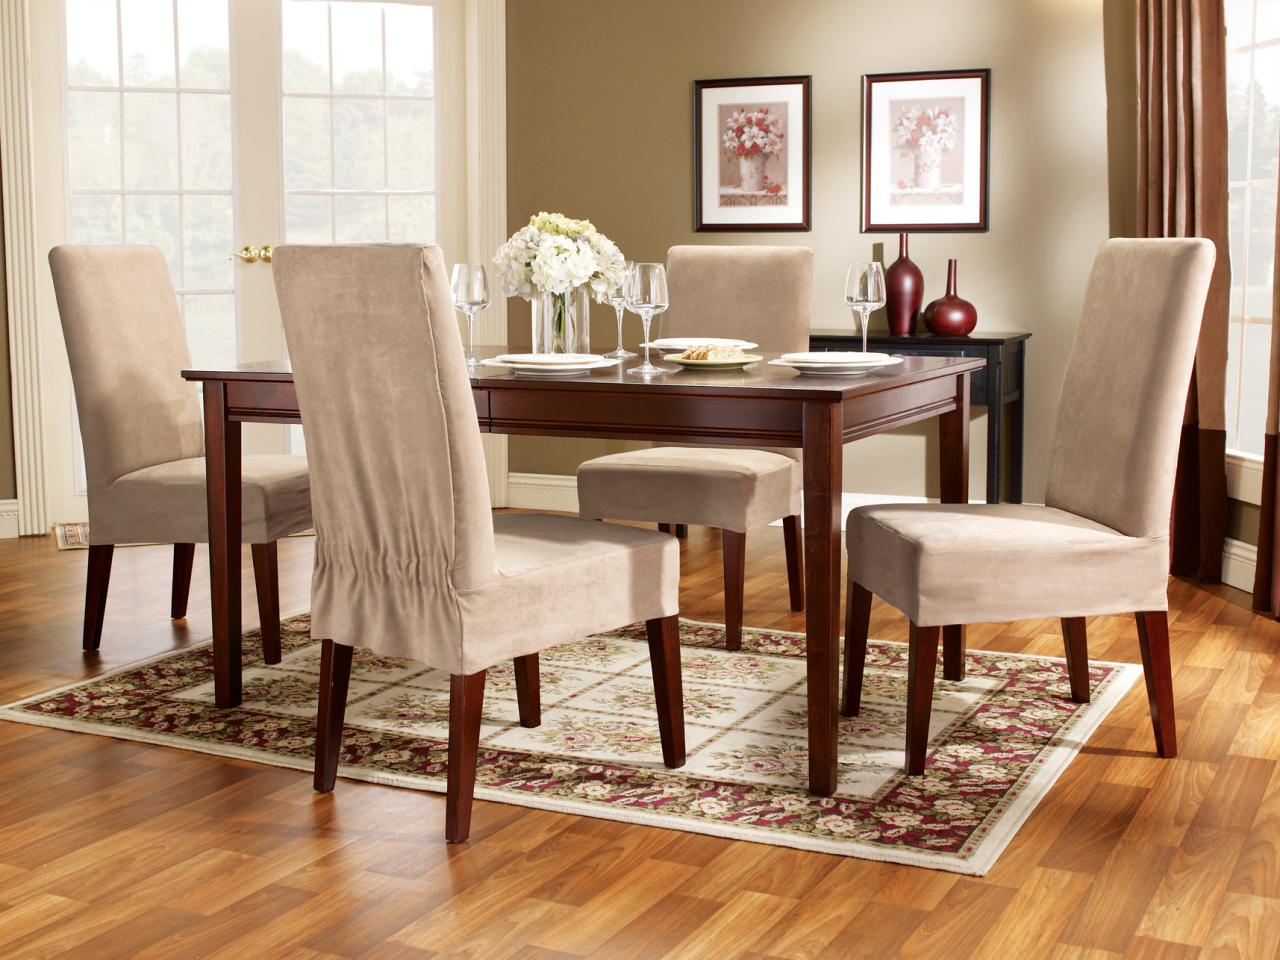 One of the great dining room chair seat covers you may get is classic covers with simple design